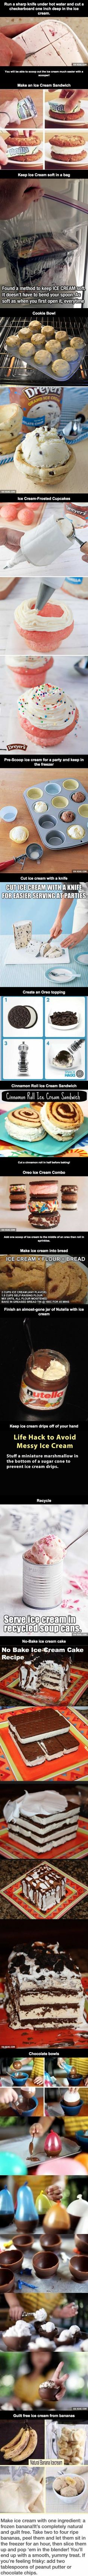 TIPS 4 the next Ice Cream Party: Ice Cream Hacks That Will Take Your Life to the Next Level